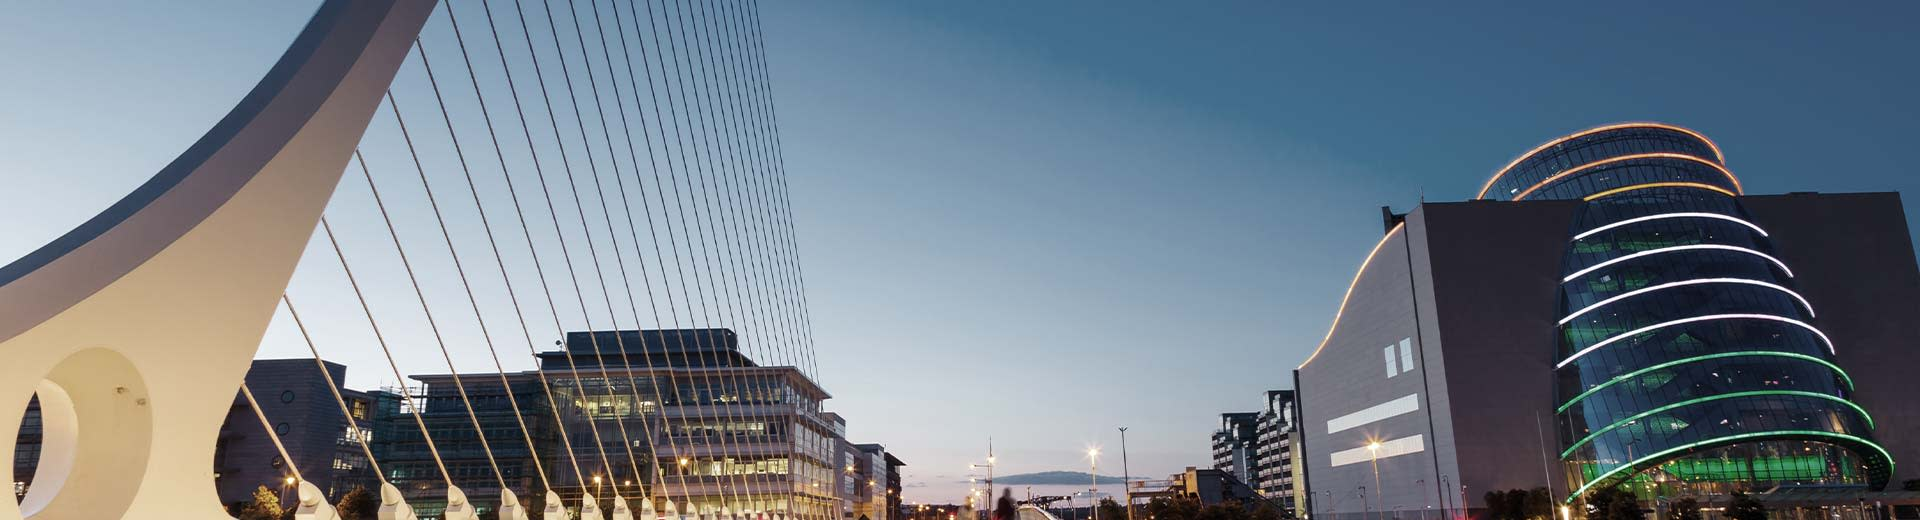 Commercial buildings and a modern bridge during a darker part of the day in Dublin